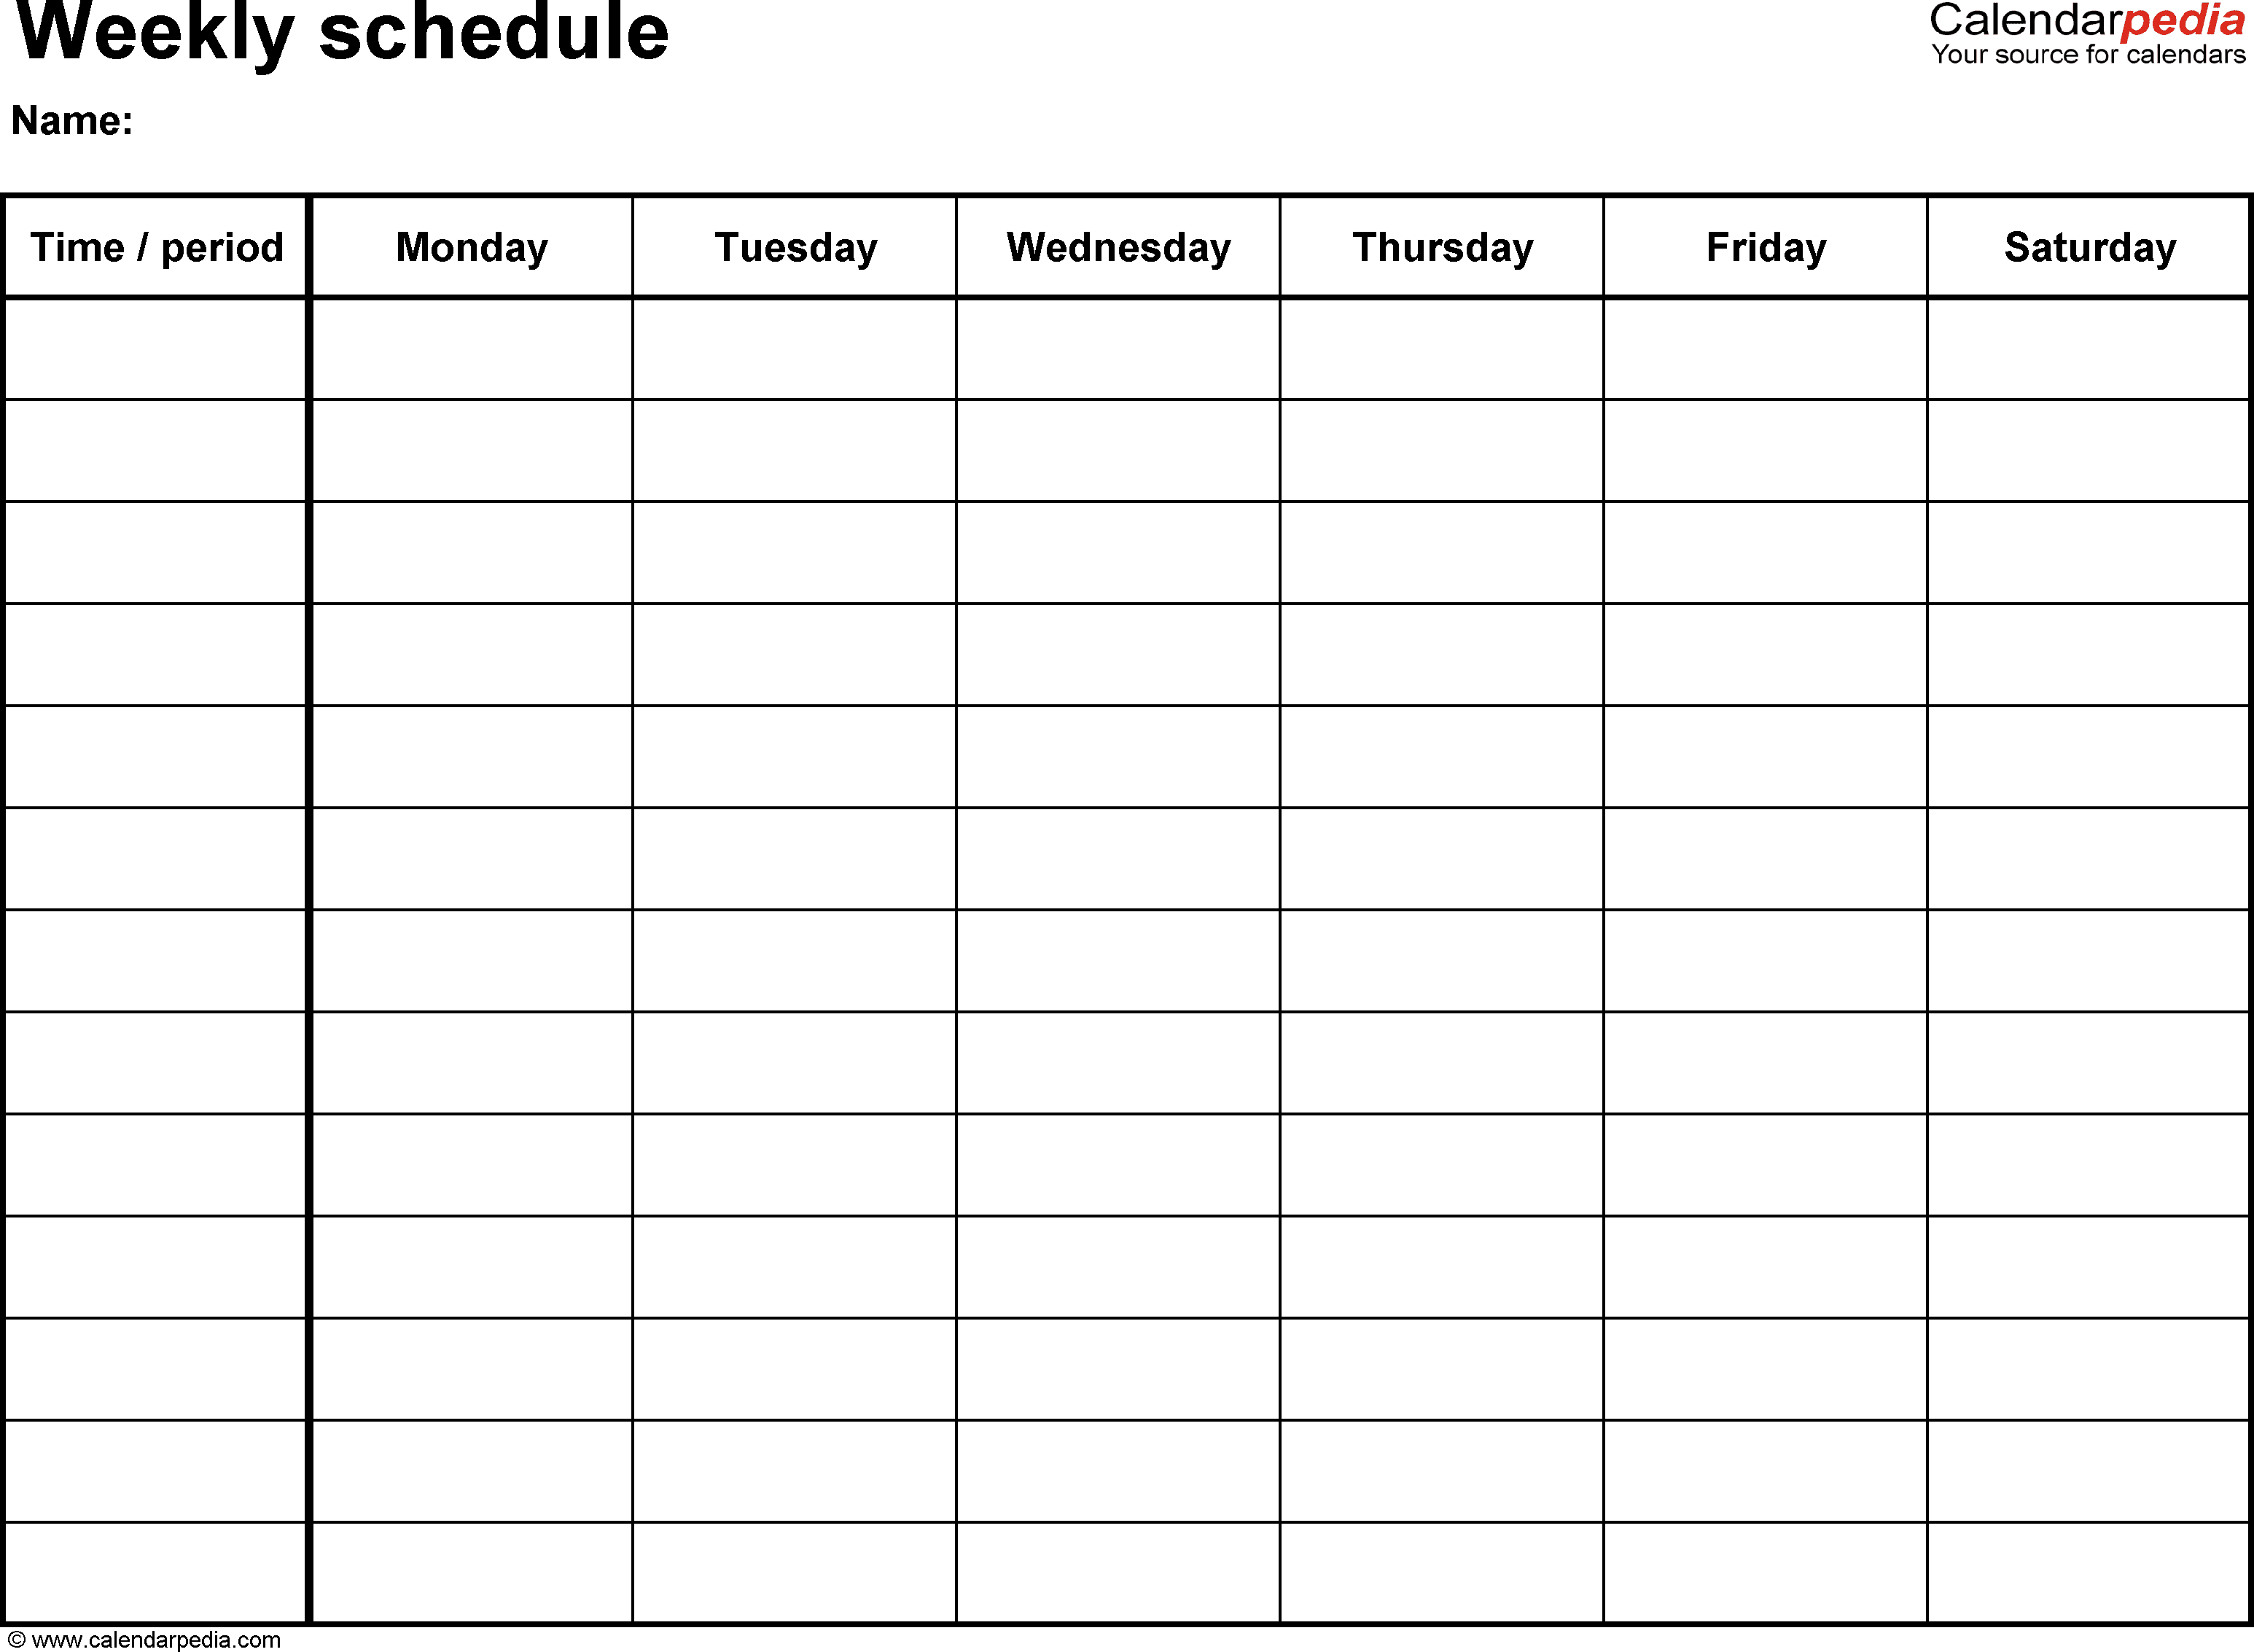 weekly schedule calendar template